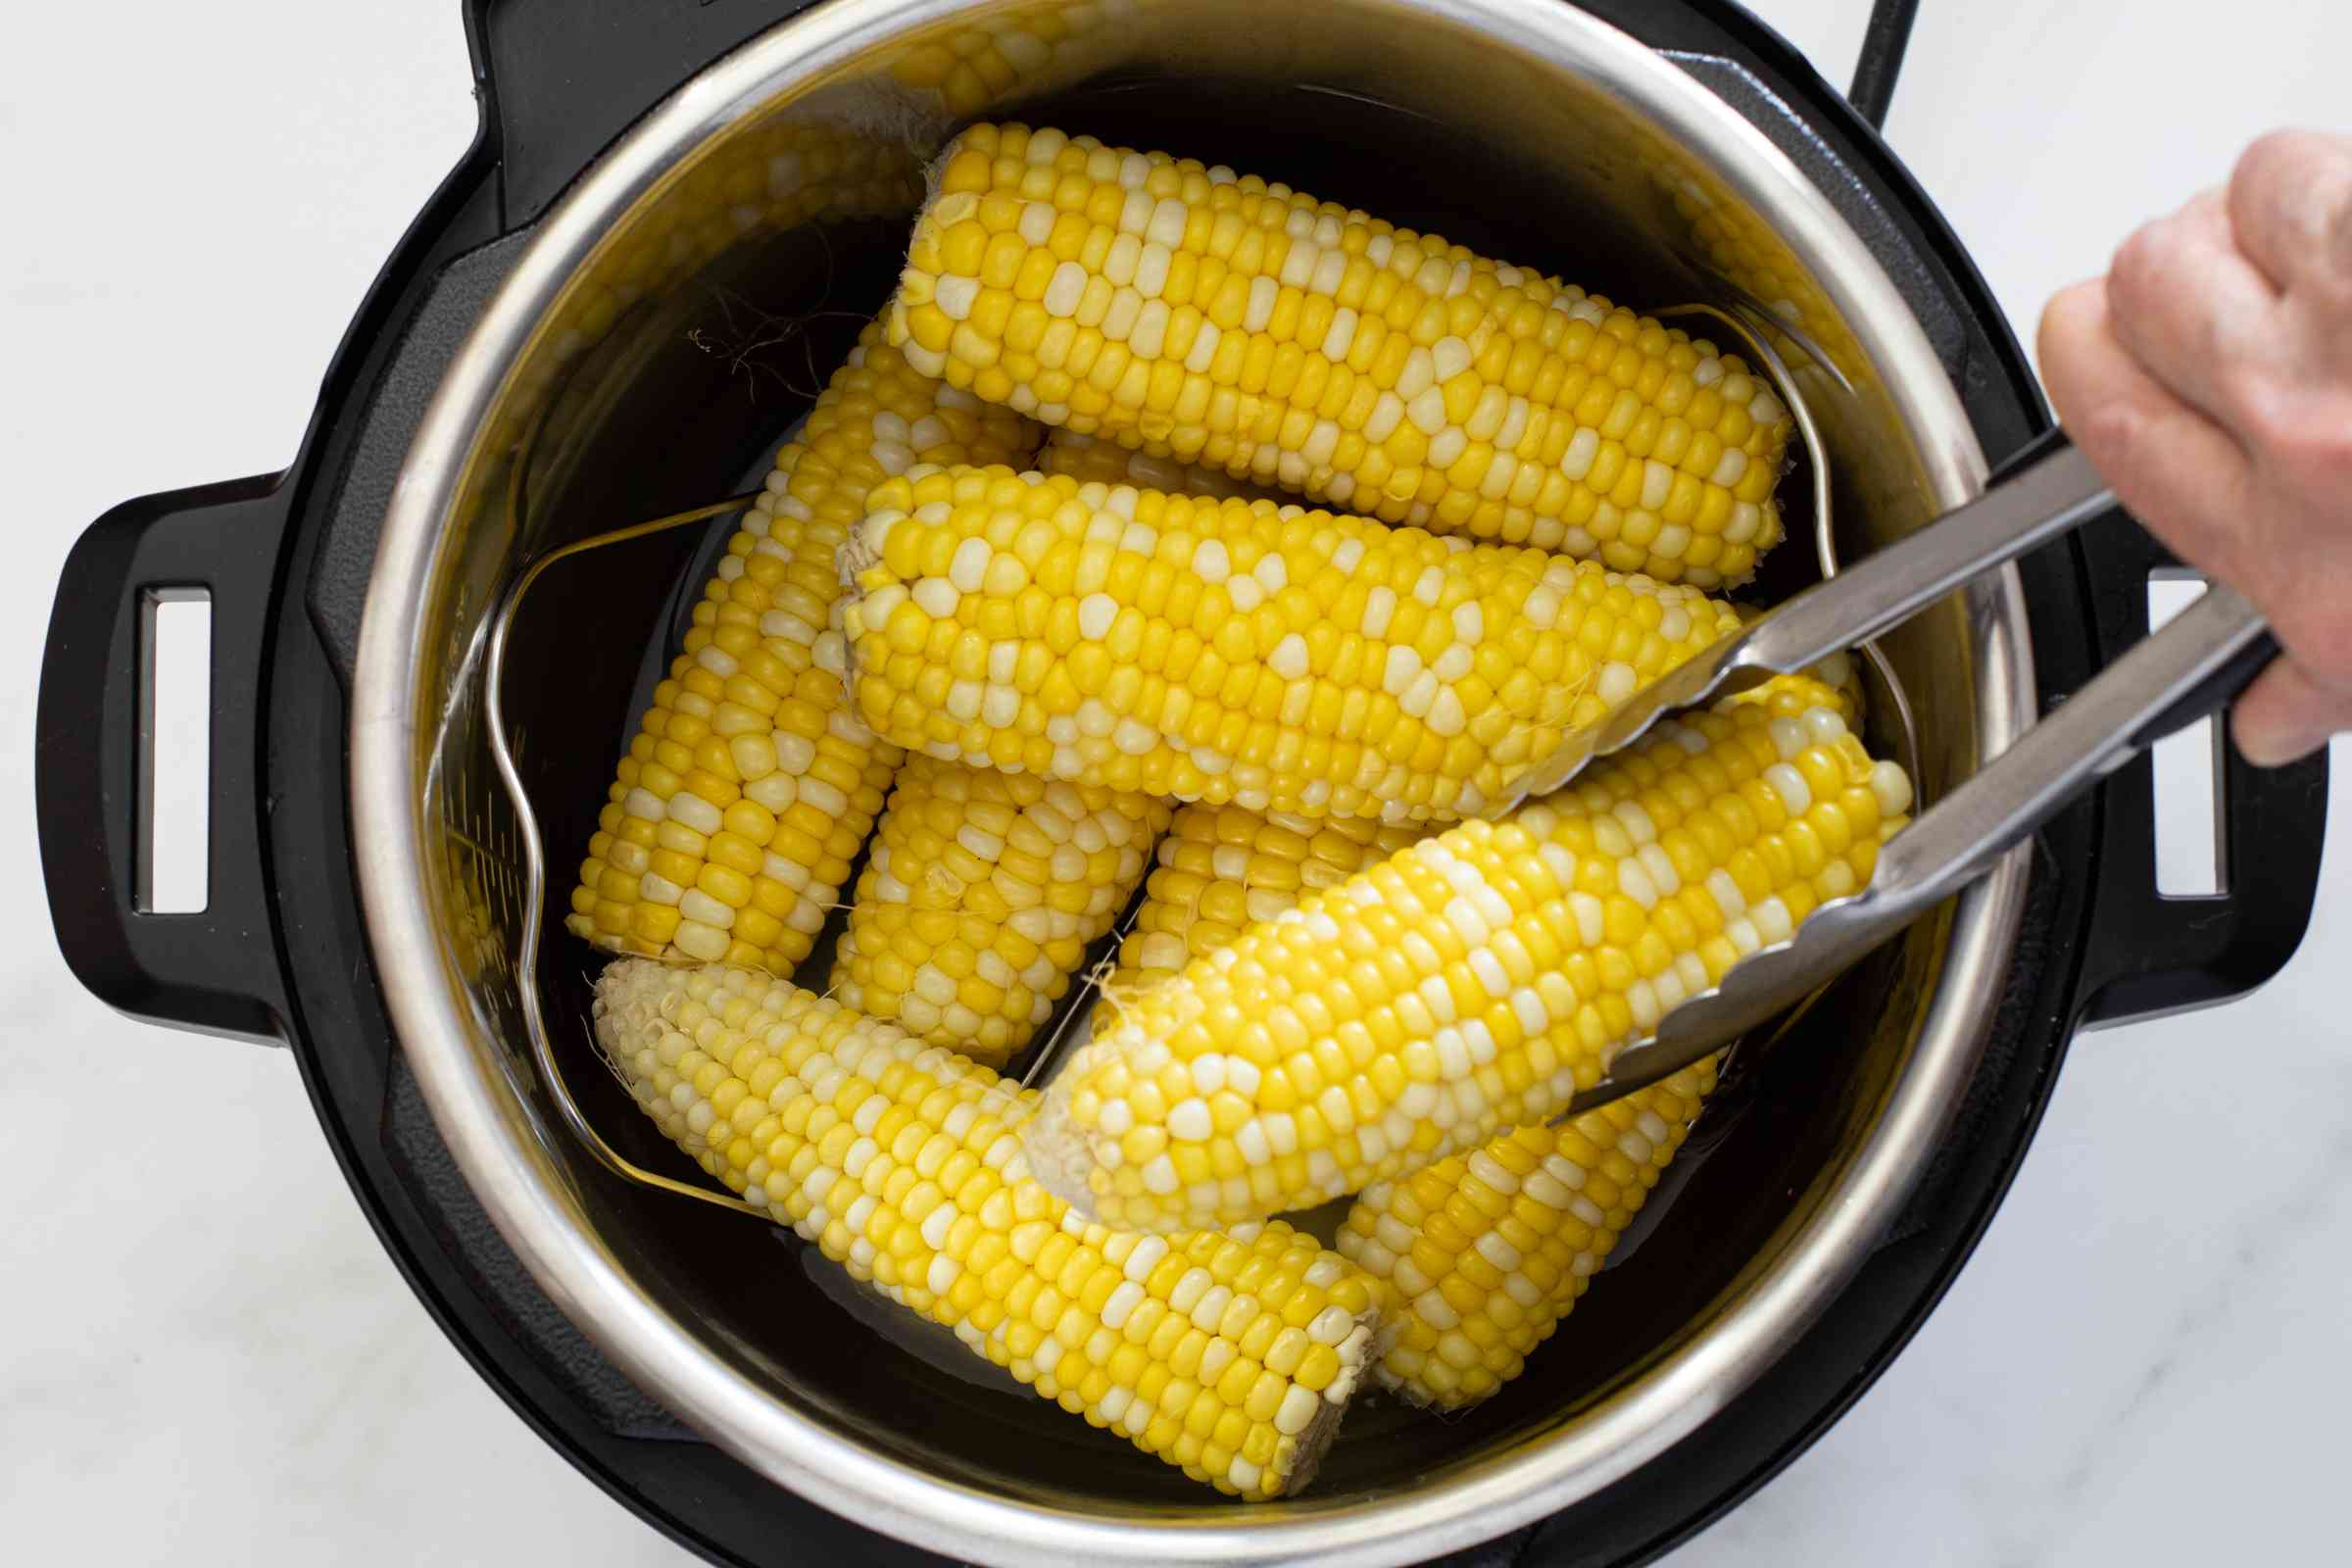 Corn on the cob is taken out of the Instant Pot with tongs.